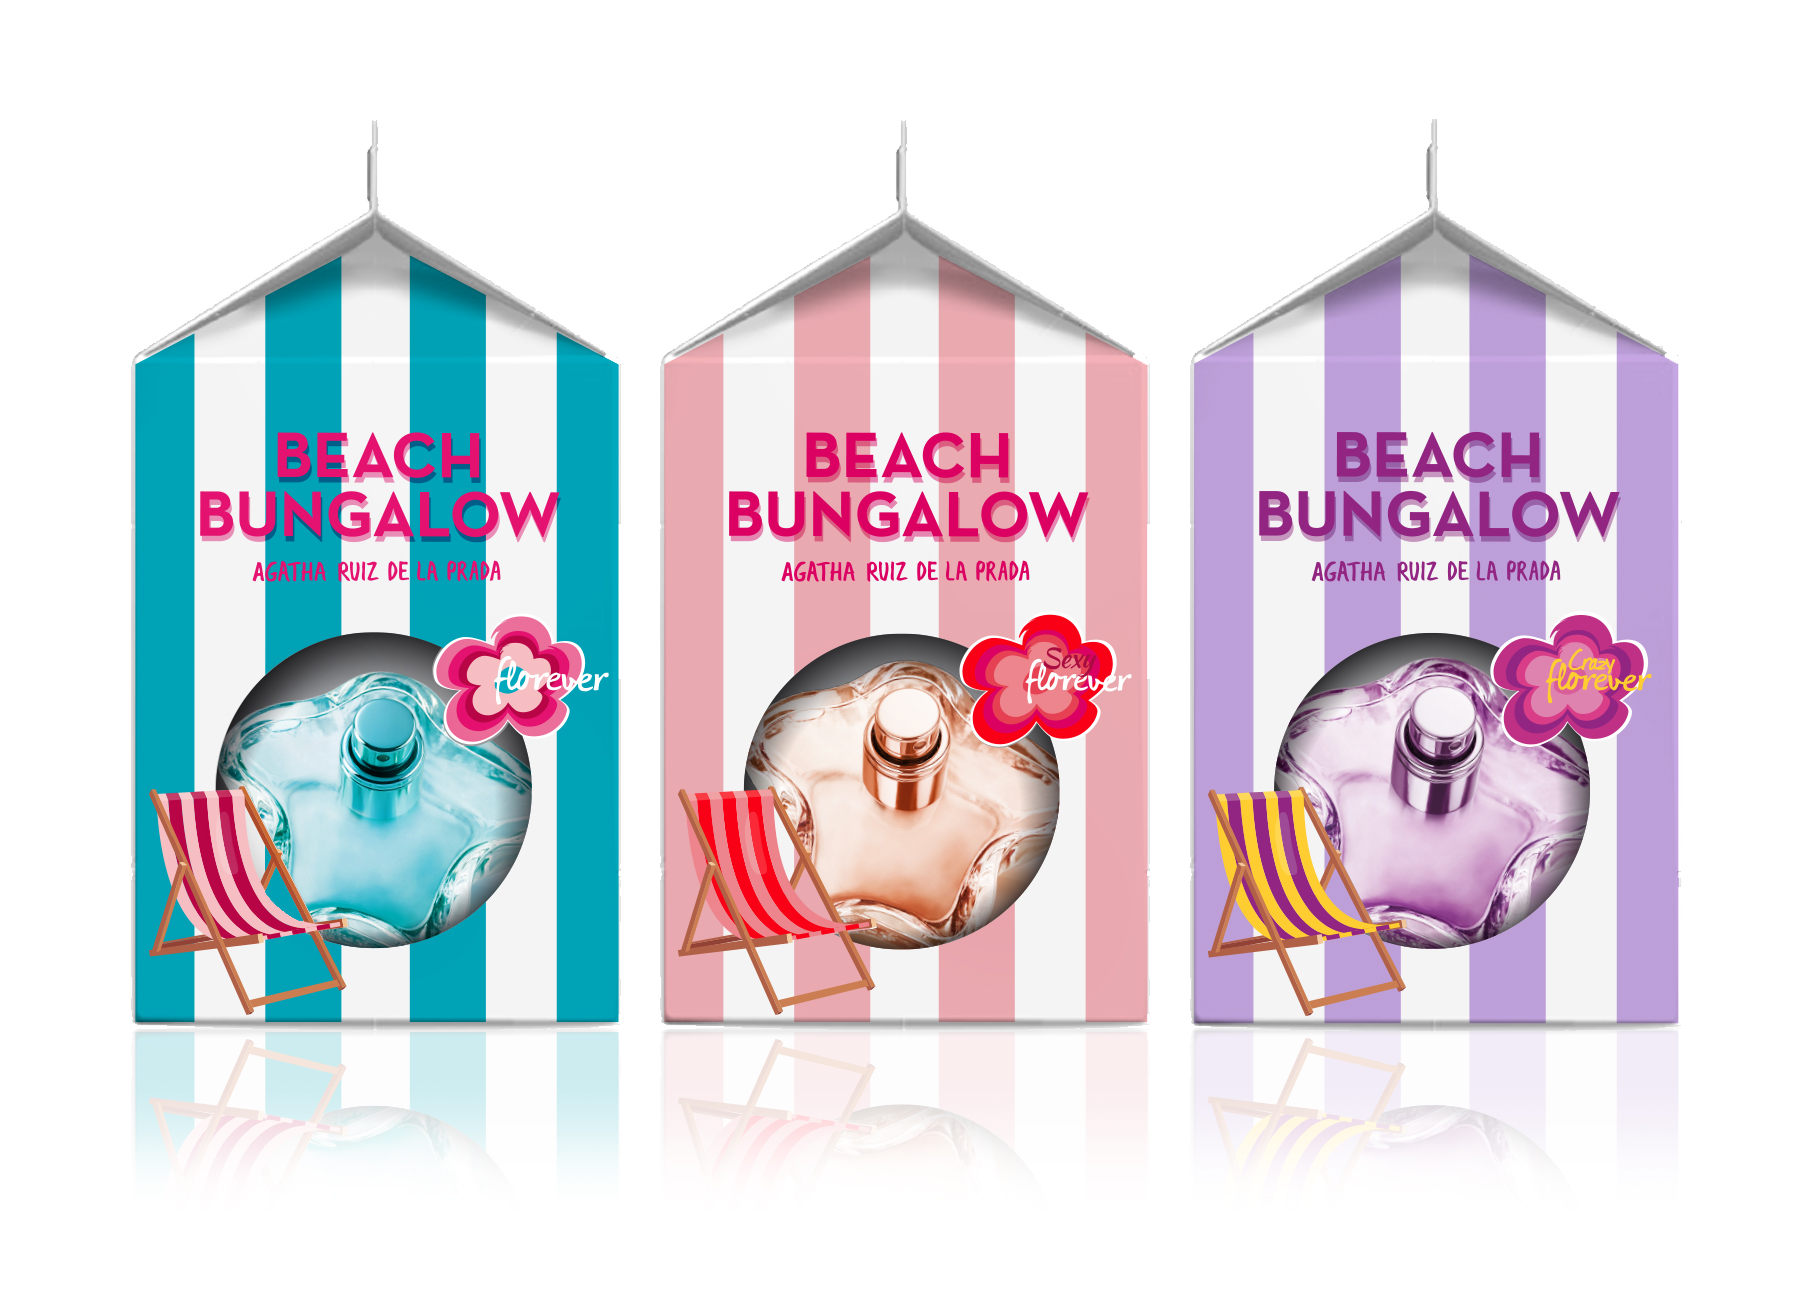 «Beach Bungalow» Special Edition x Agatha Ruiz de la Prada fragrances